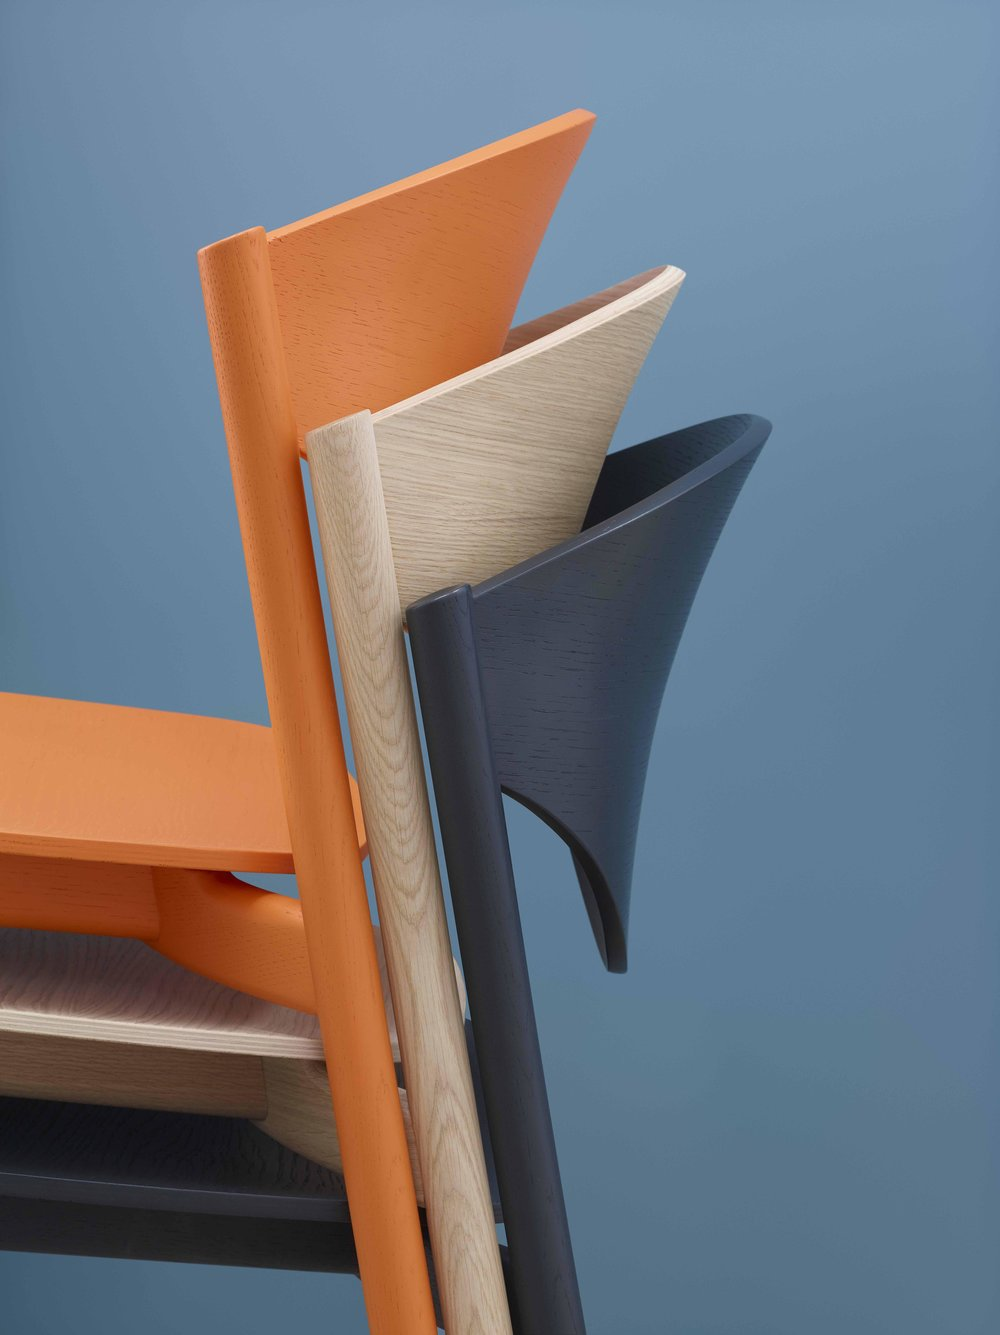 The  March Chair –developed for Modus by SmithMatthias, in collaboration with Sir Kenneth Grange– is a bold, beautiful and stackable chair.